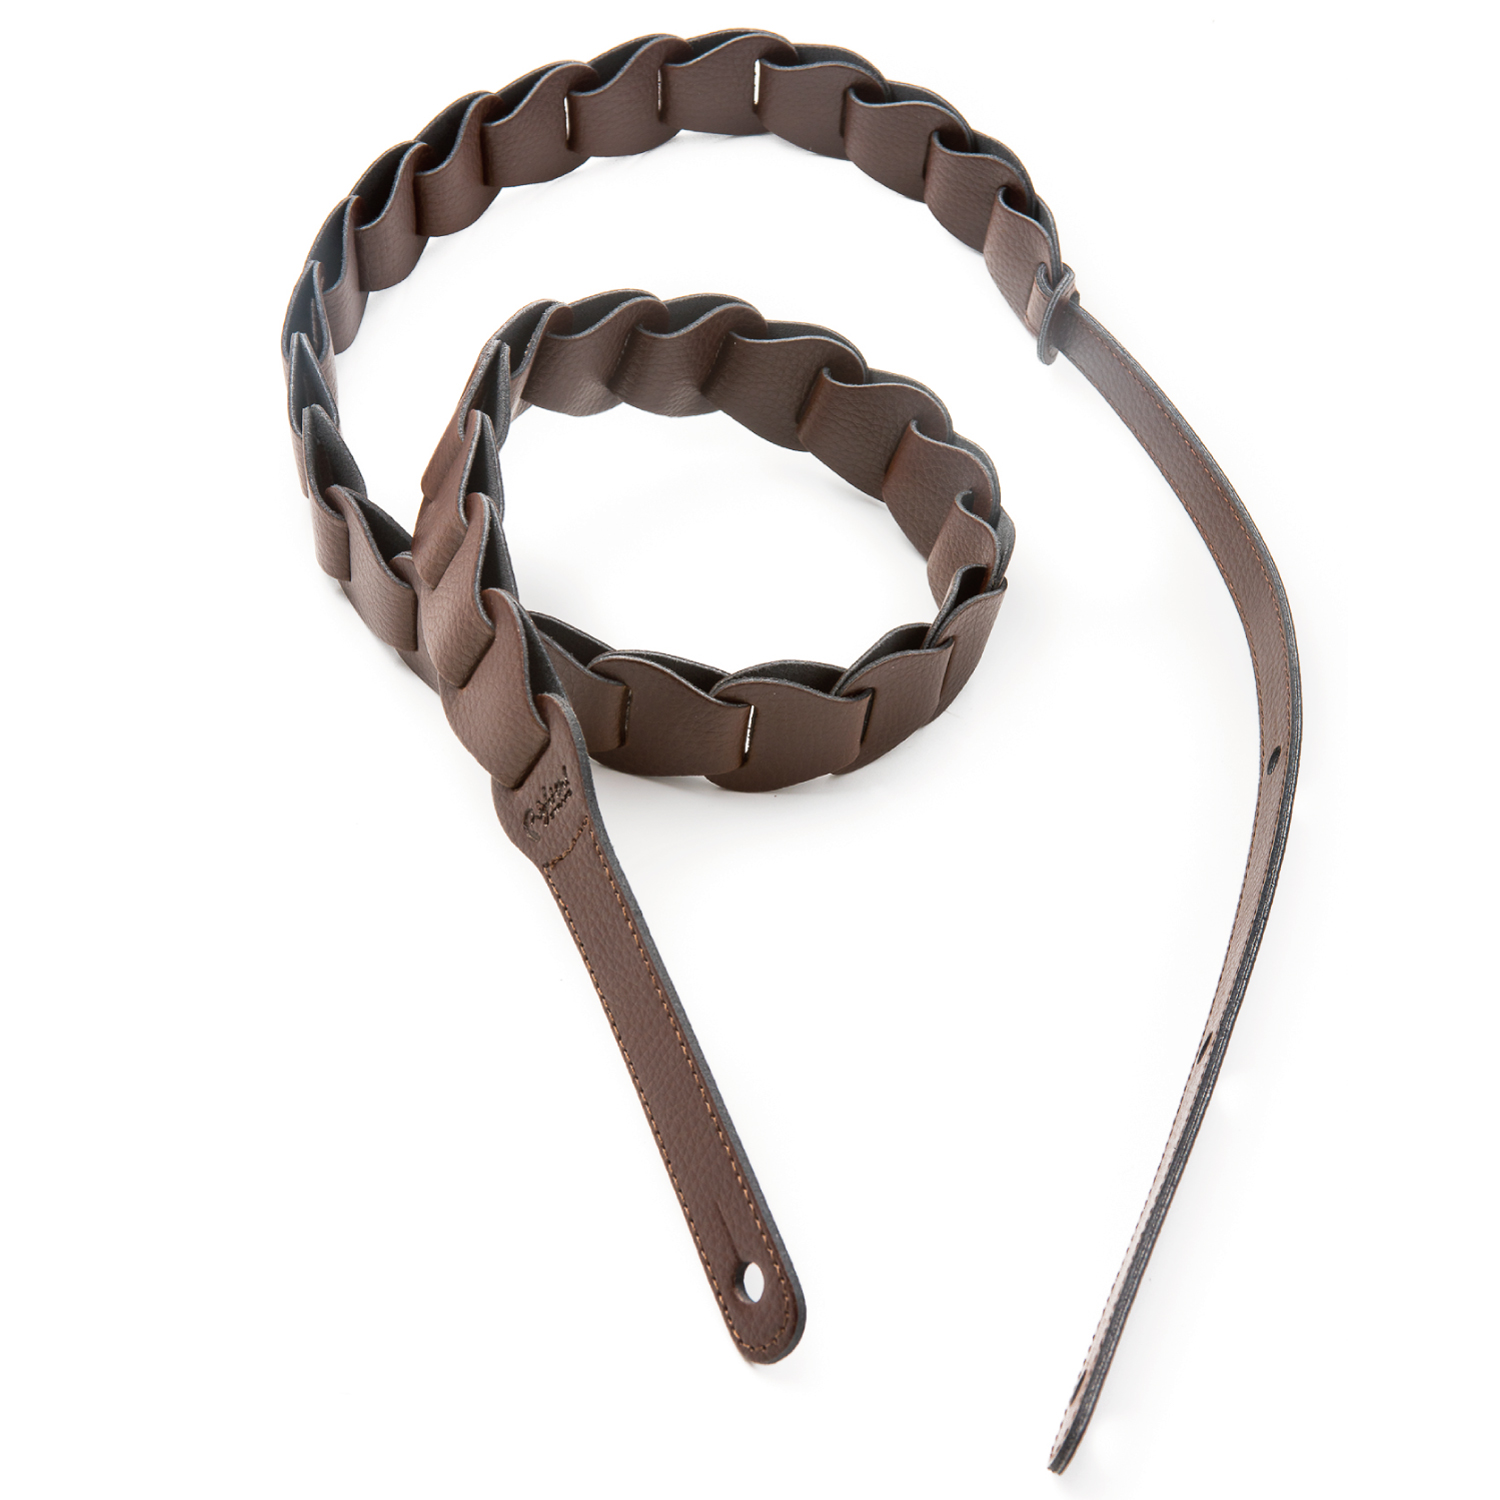 SPECIAL-LINKS-BROWN-RIGHTONSTRAPS--(3)1500